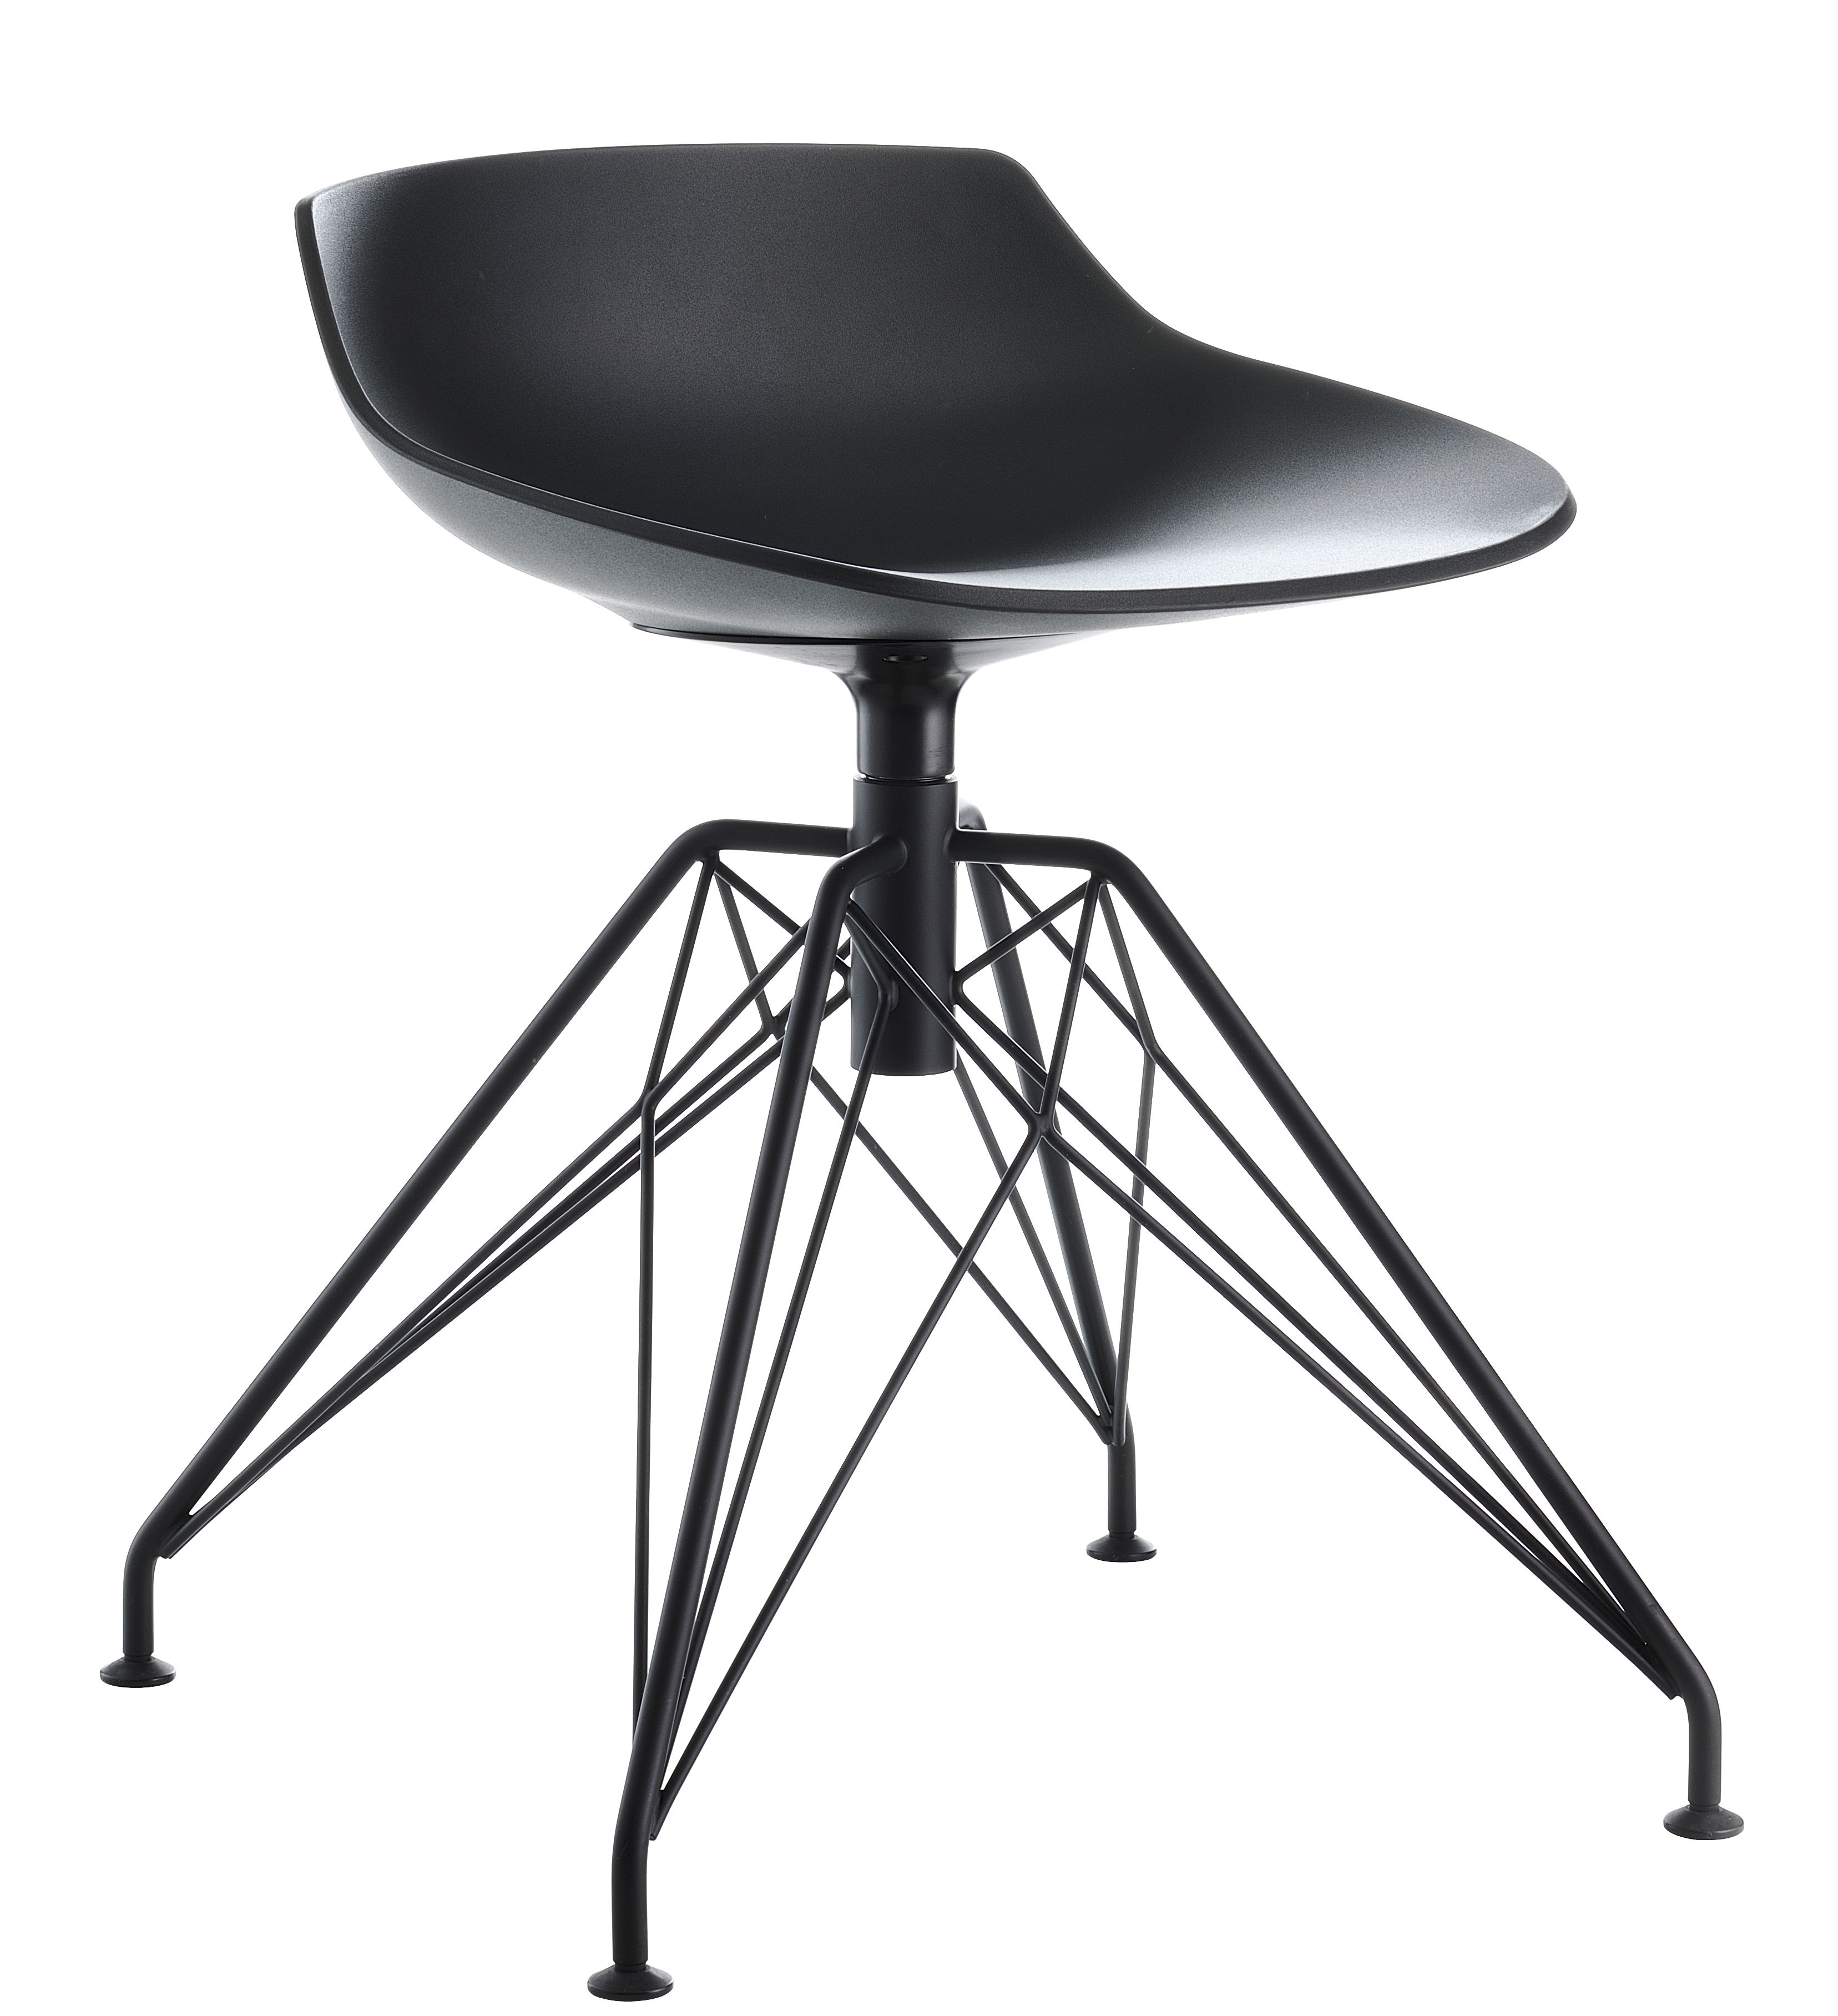 Furniture - Stools - Flow Stool by MDF Italia - Black / Graphite leg - Painted steel, Polyurethane